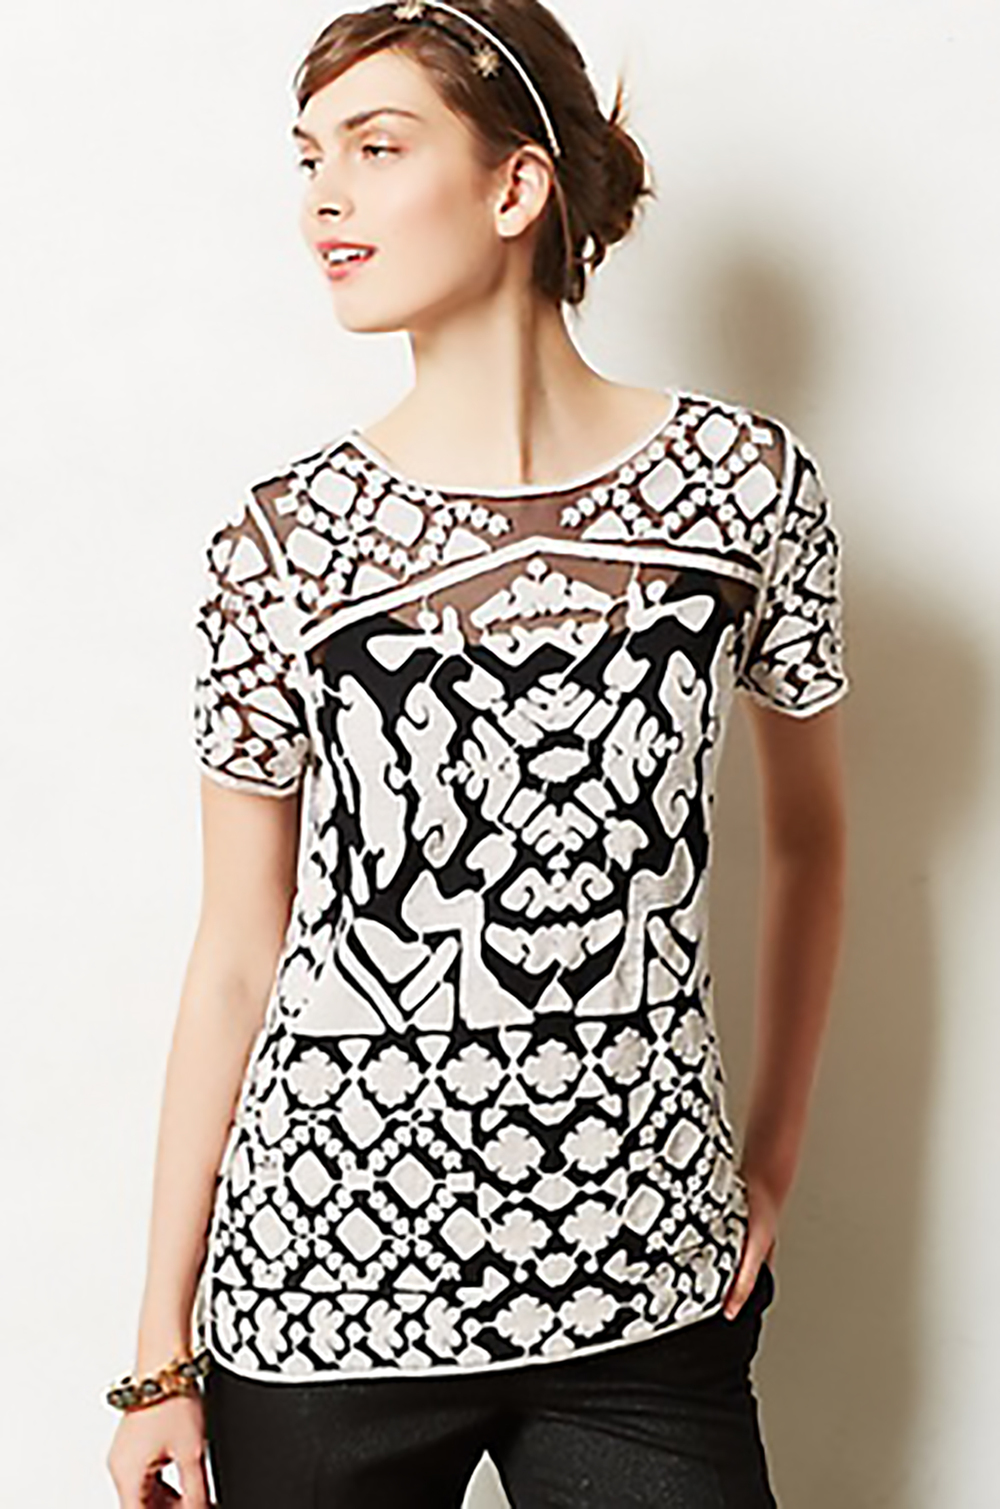 anthropologie rococo tee holiday separates 1500.jpg